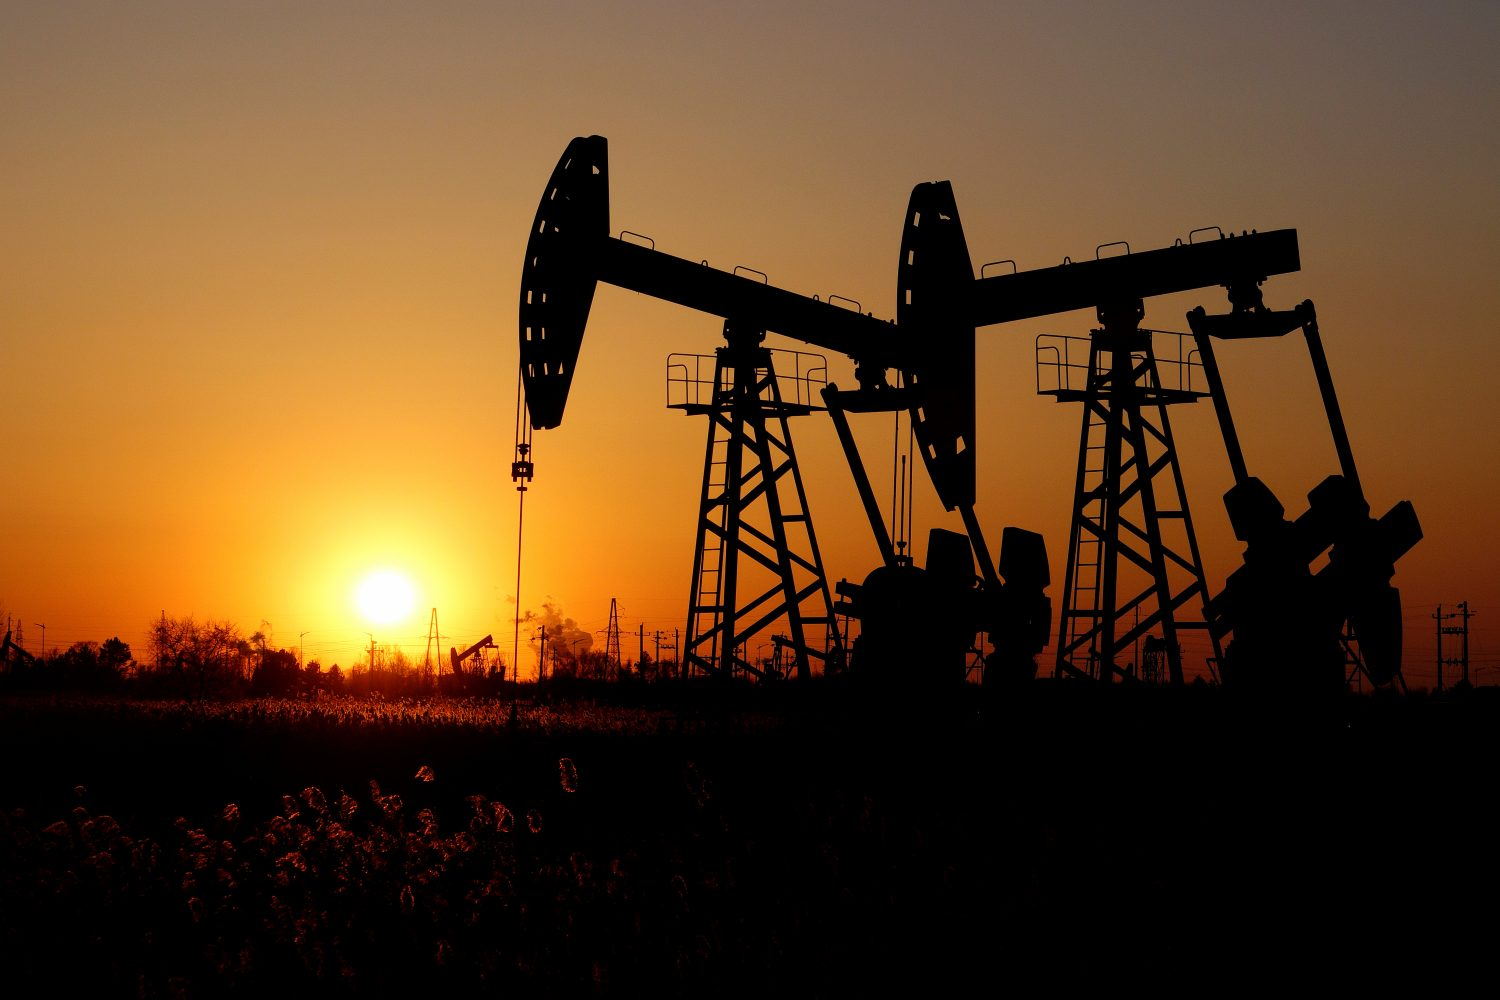 FILE PHOTO: Pumpjacks are seen against the setting sun at the Daqing oil field in Heilongjiang province, China December 7, 2018. REUTERS/Stringe